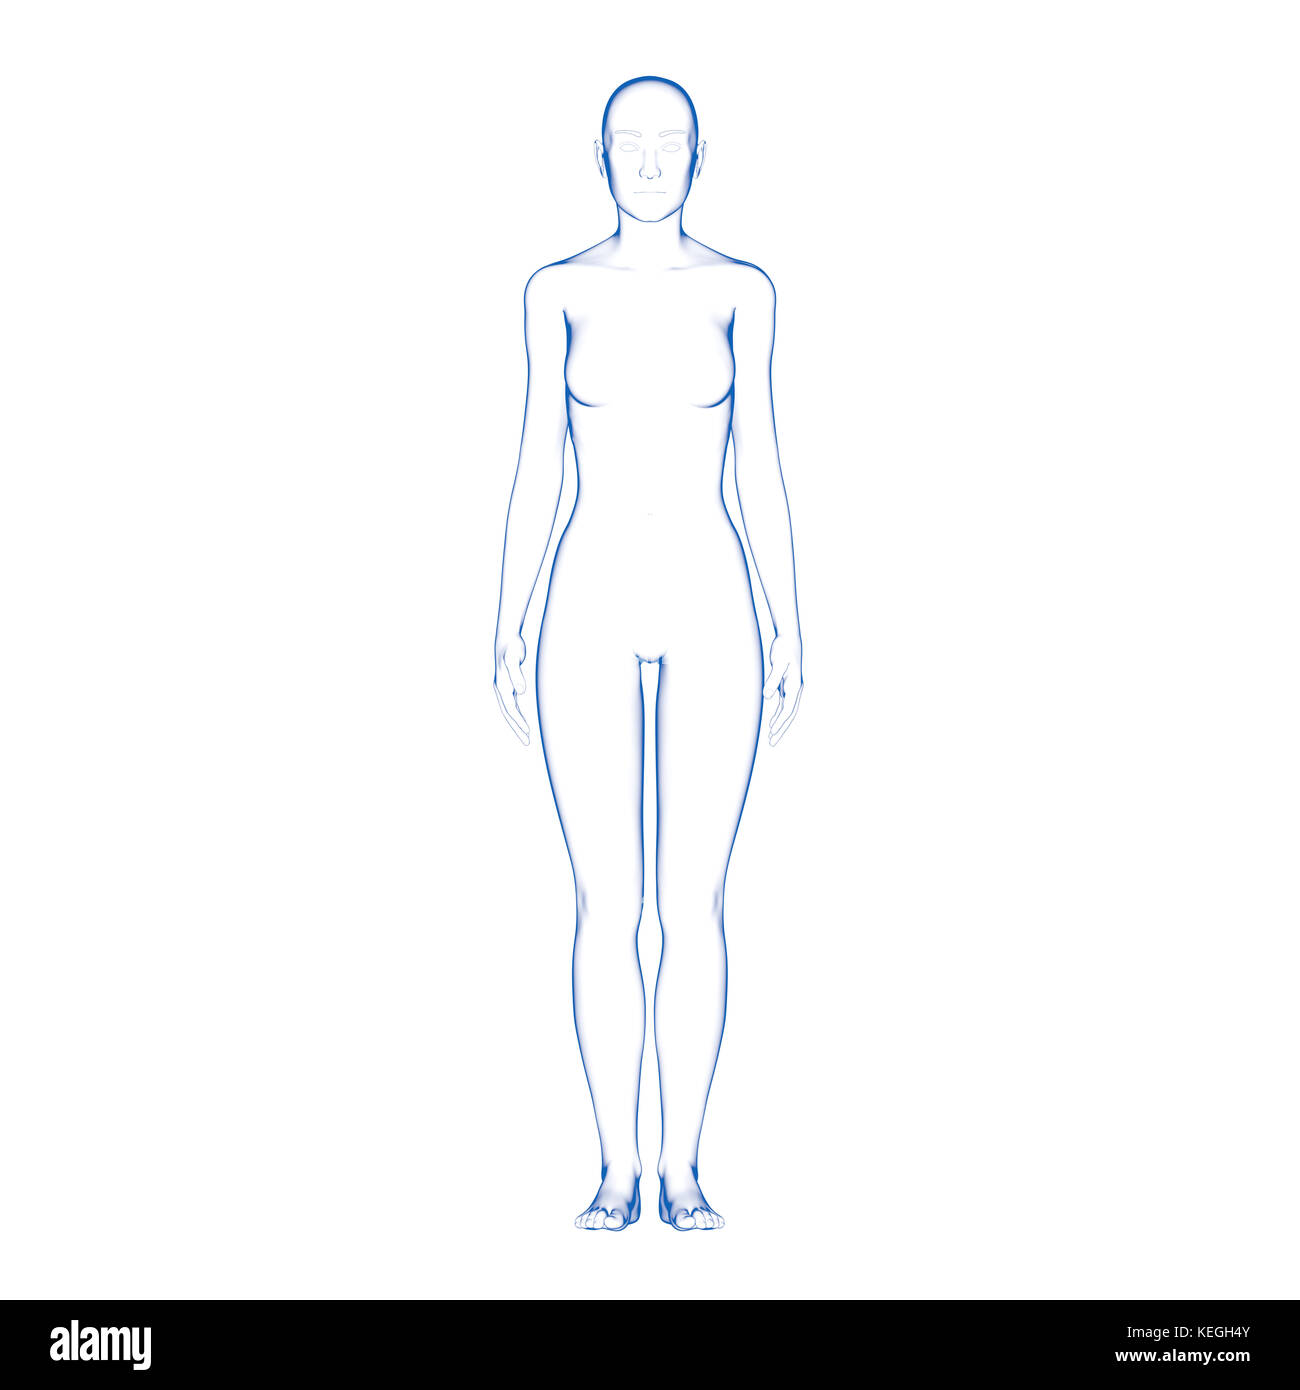 Female Human Body Shape - Stock Image